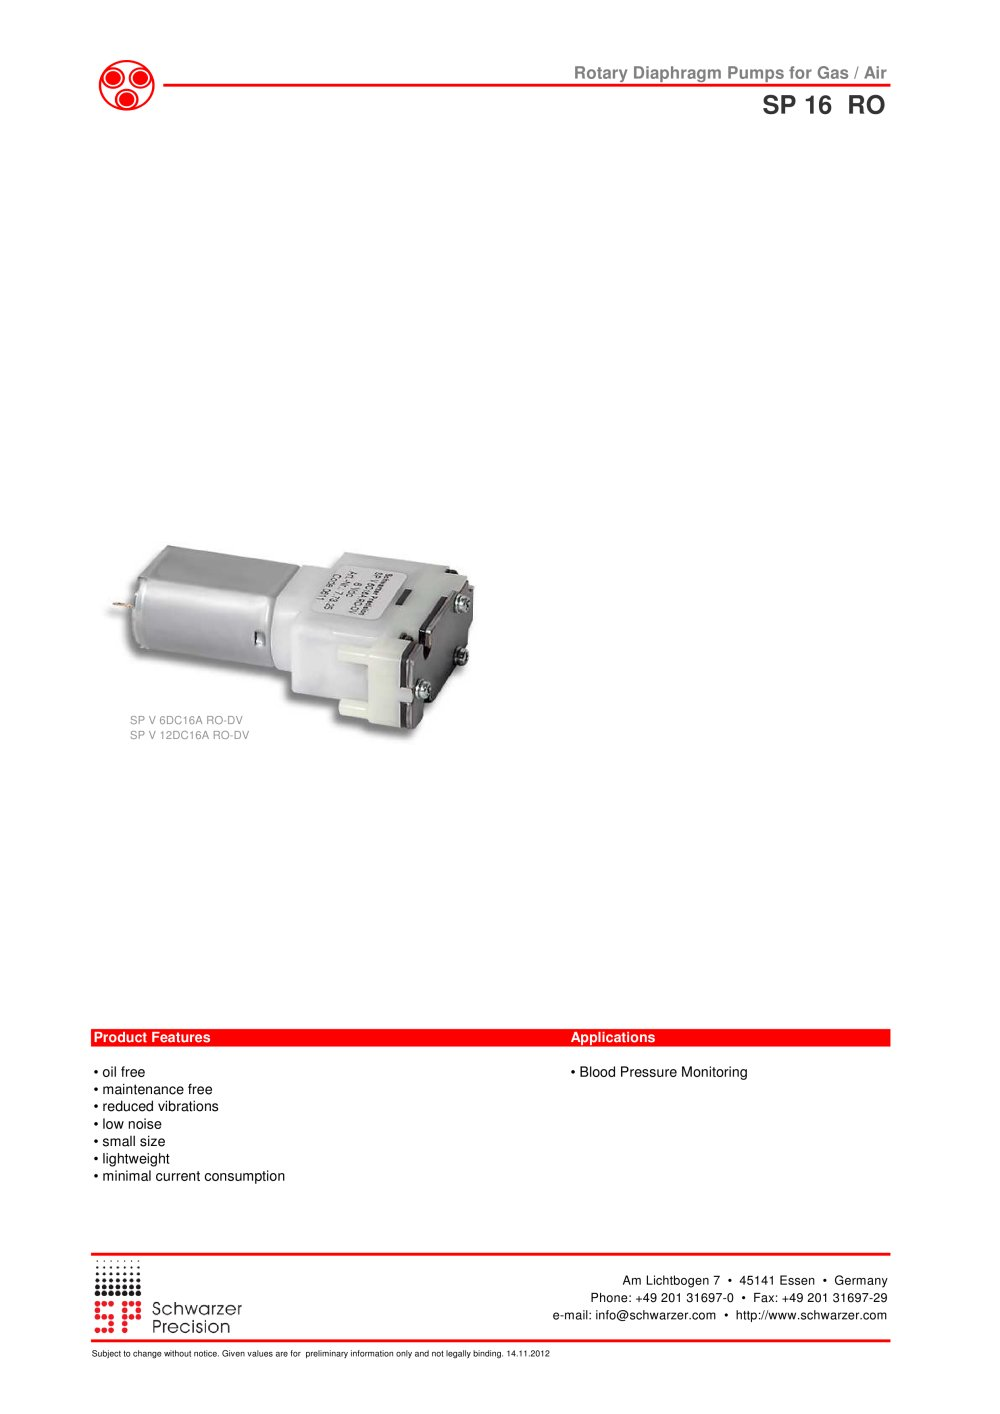 16a ro dv rotary diaphragm pumps schwarzer precision pdf 16a ro dv rotary diaphragm pumps 1 4 pages ccuart Image collections